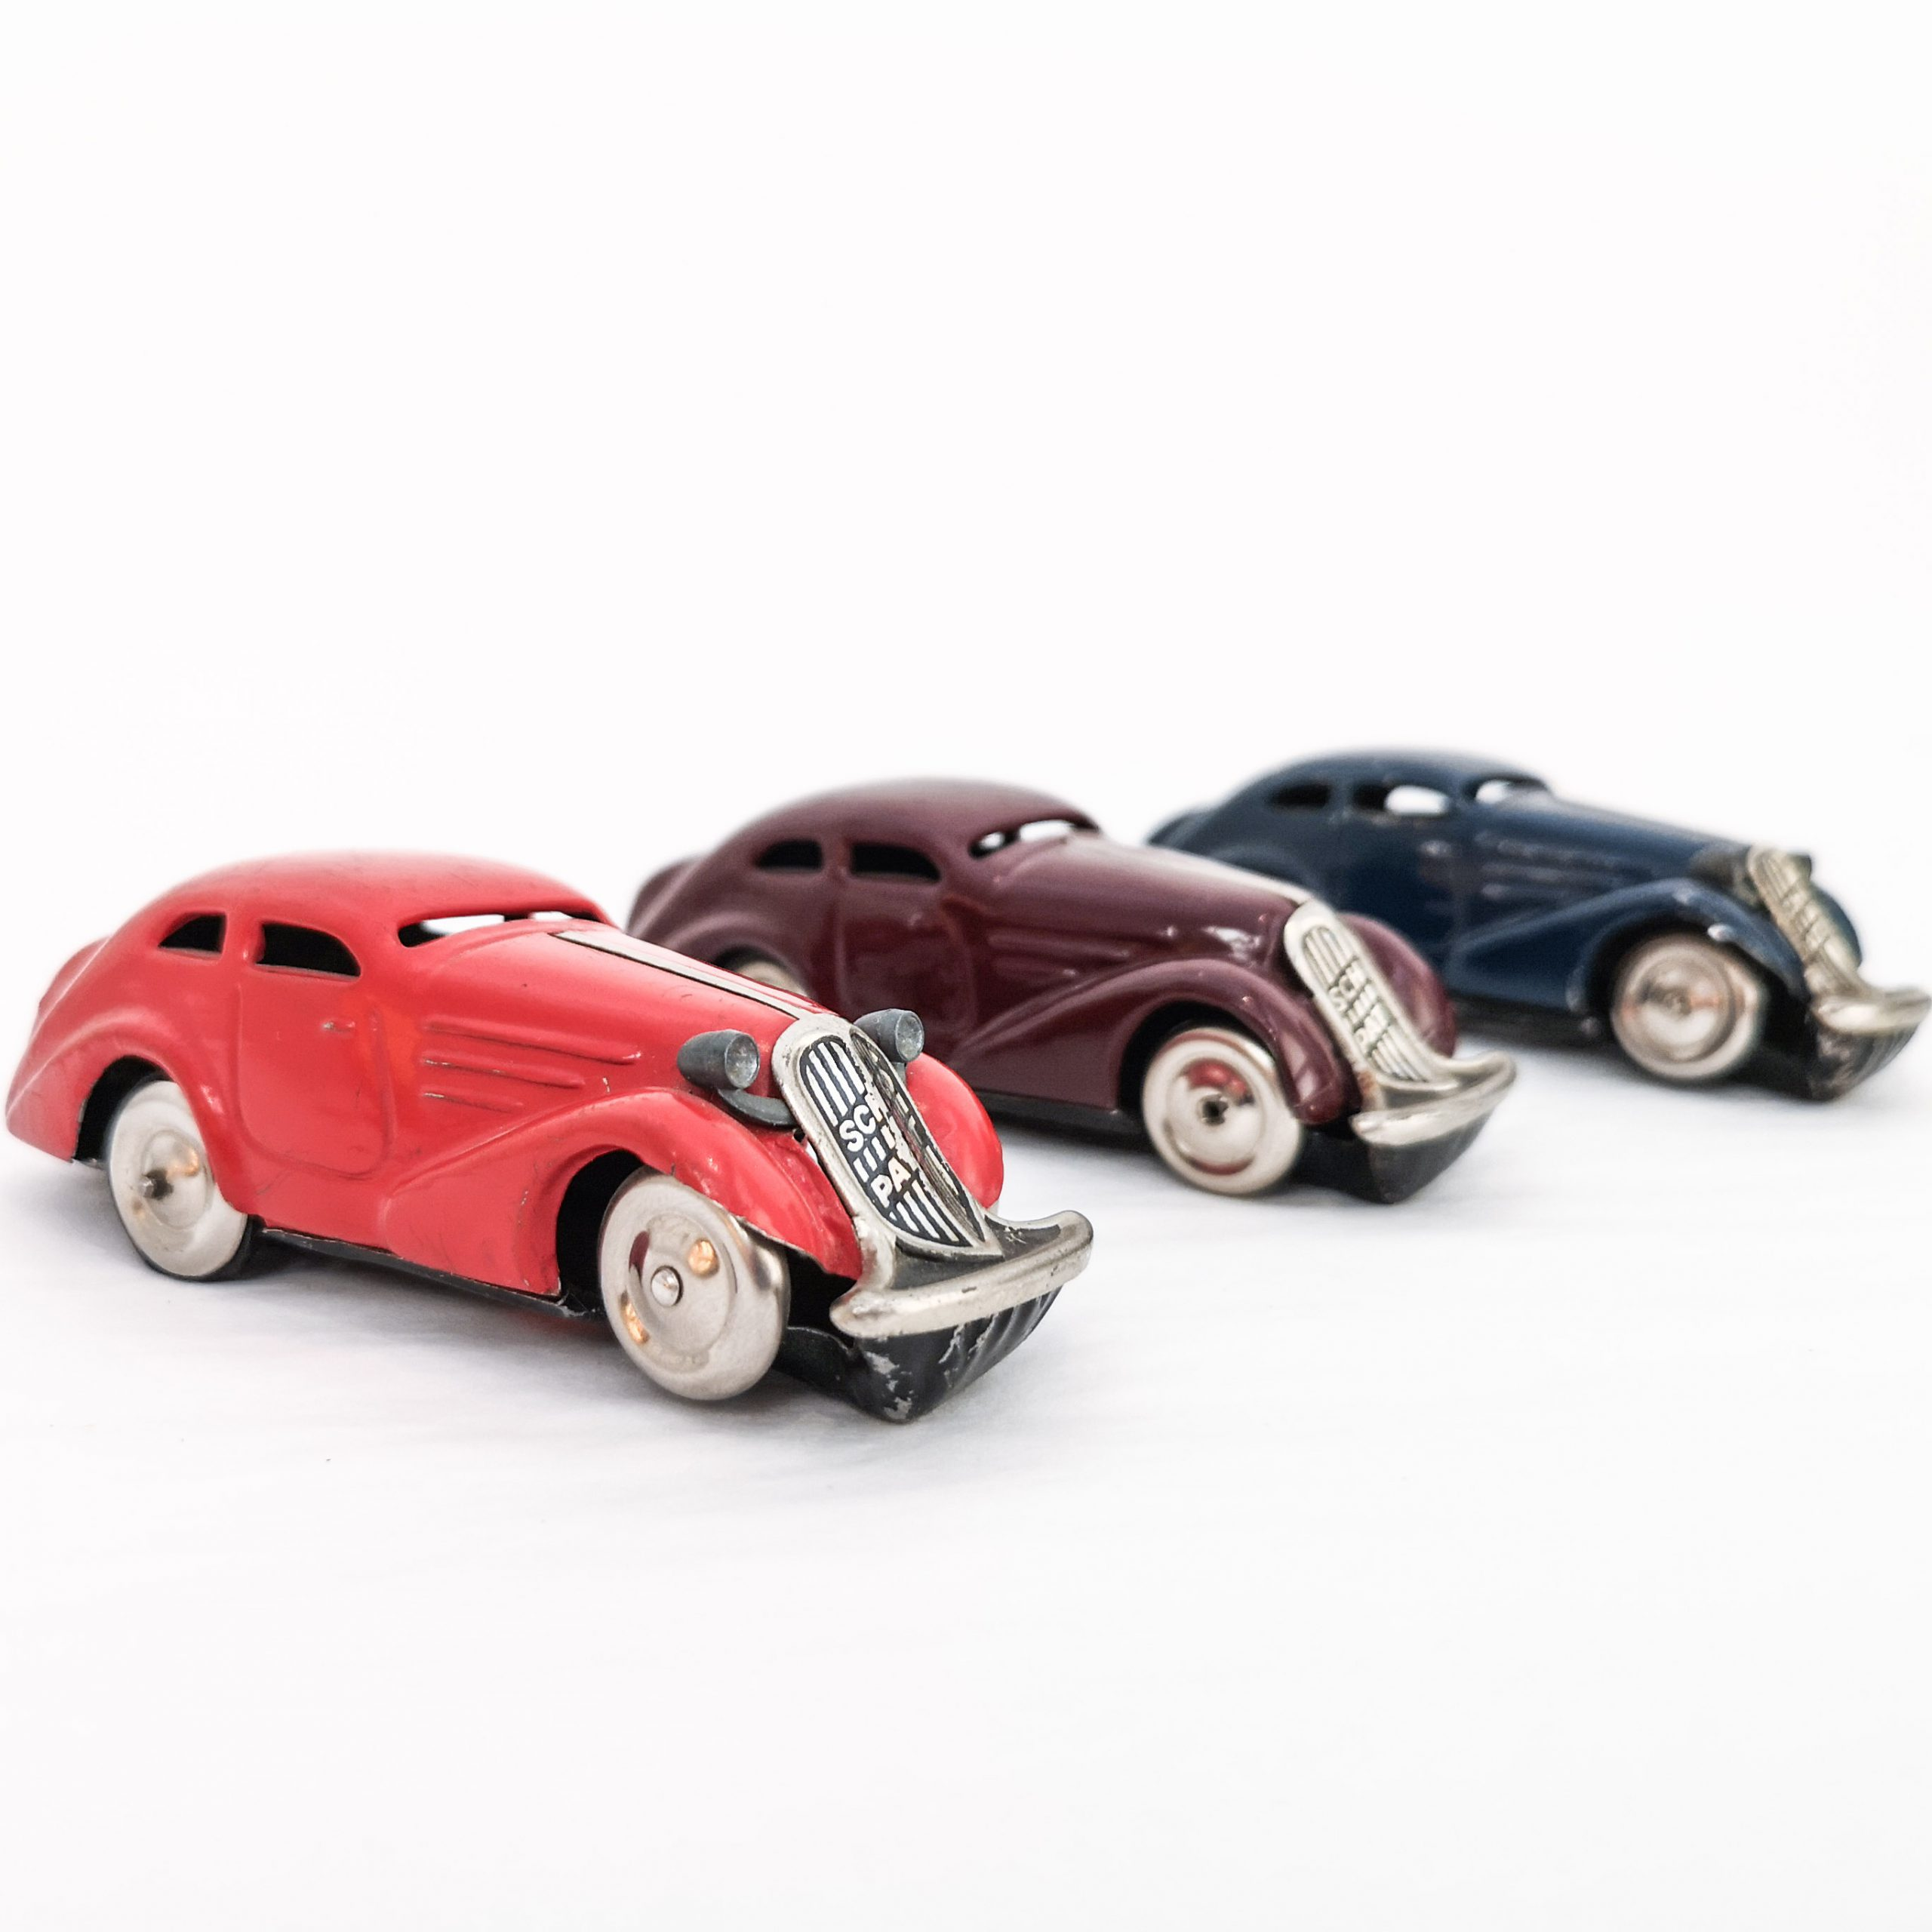 hree Schuco Patent Auto tinplate clockwork cars with turn-back feature. 1.5